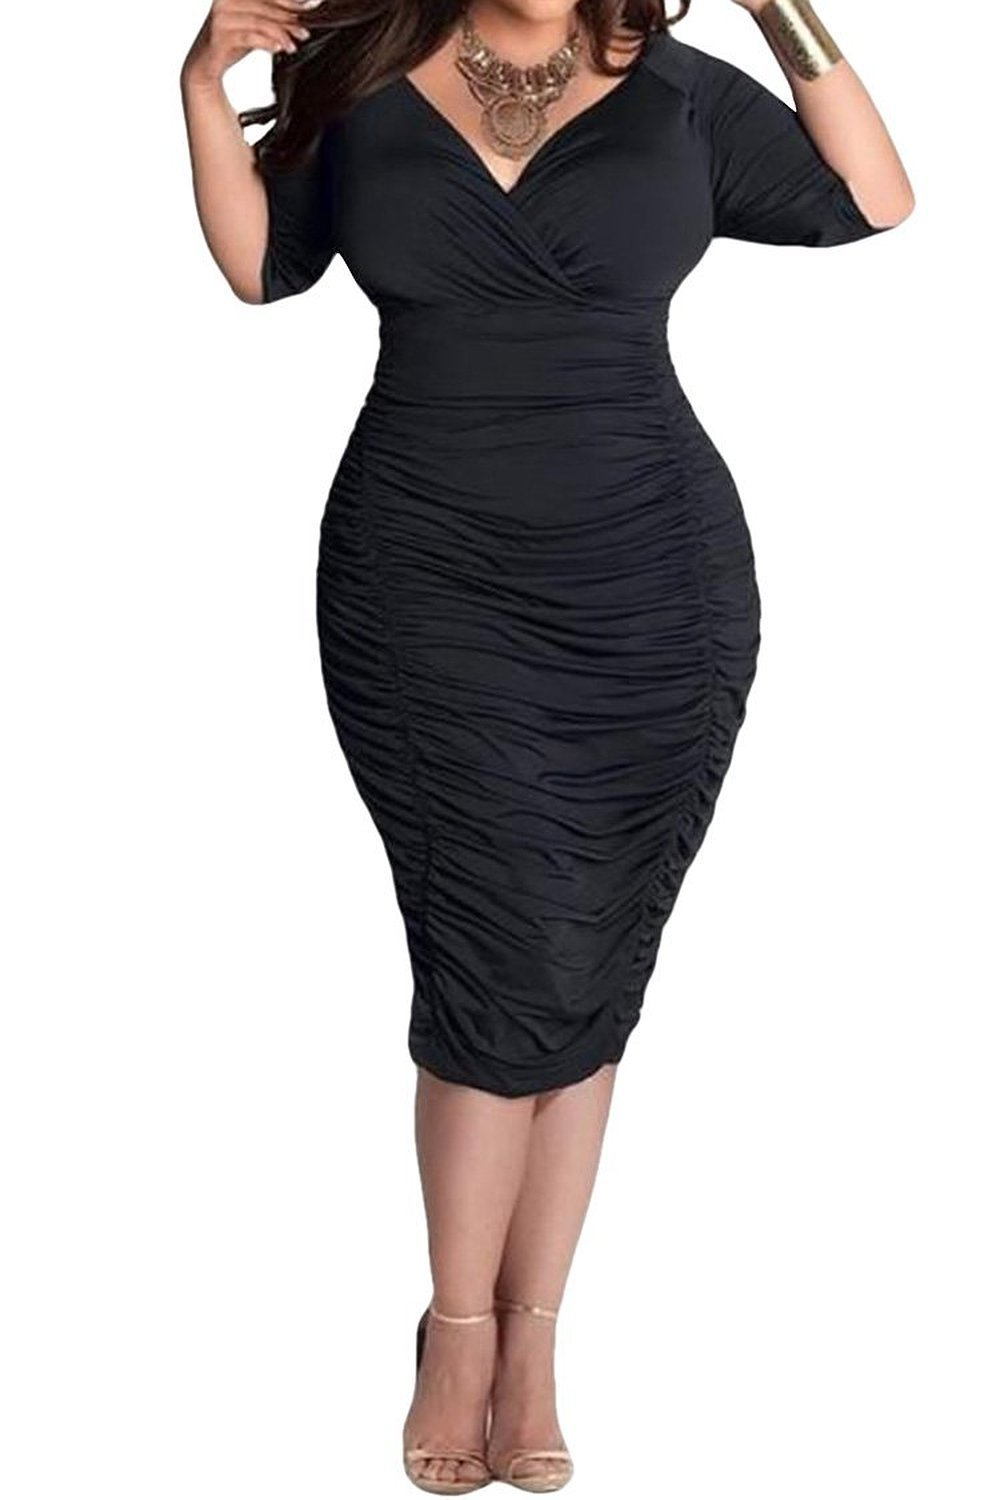 Plus Size Dresses - Women Summer Casual Short Sleeve Dresses Empire Waist Dress With Pockets